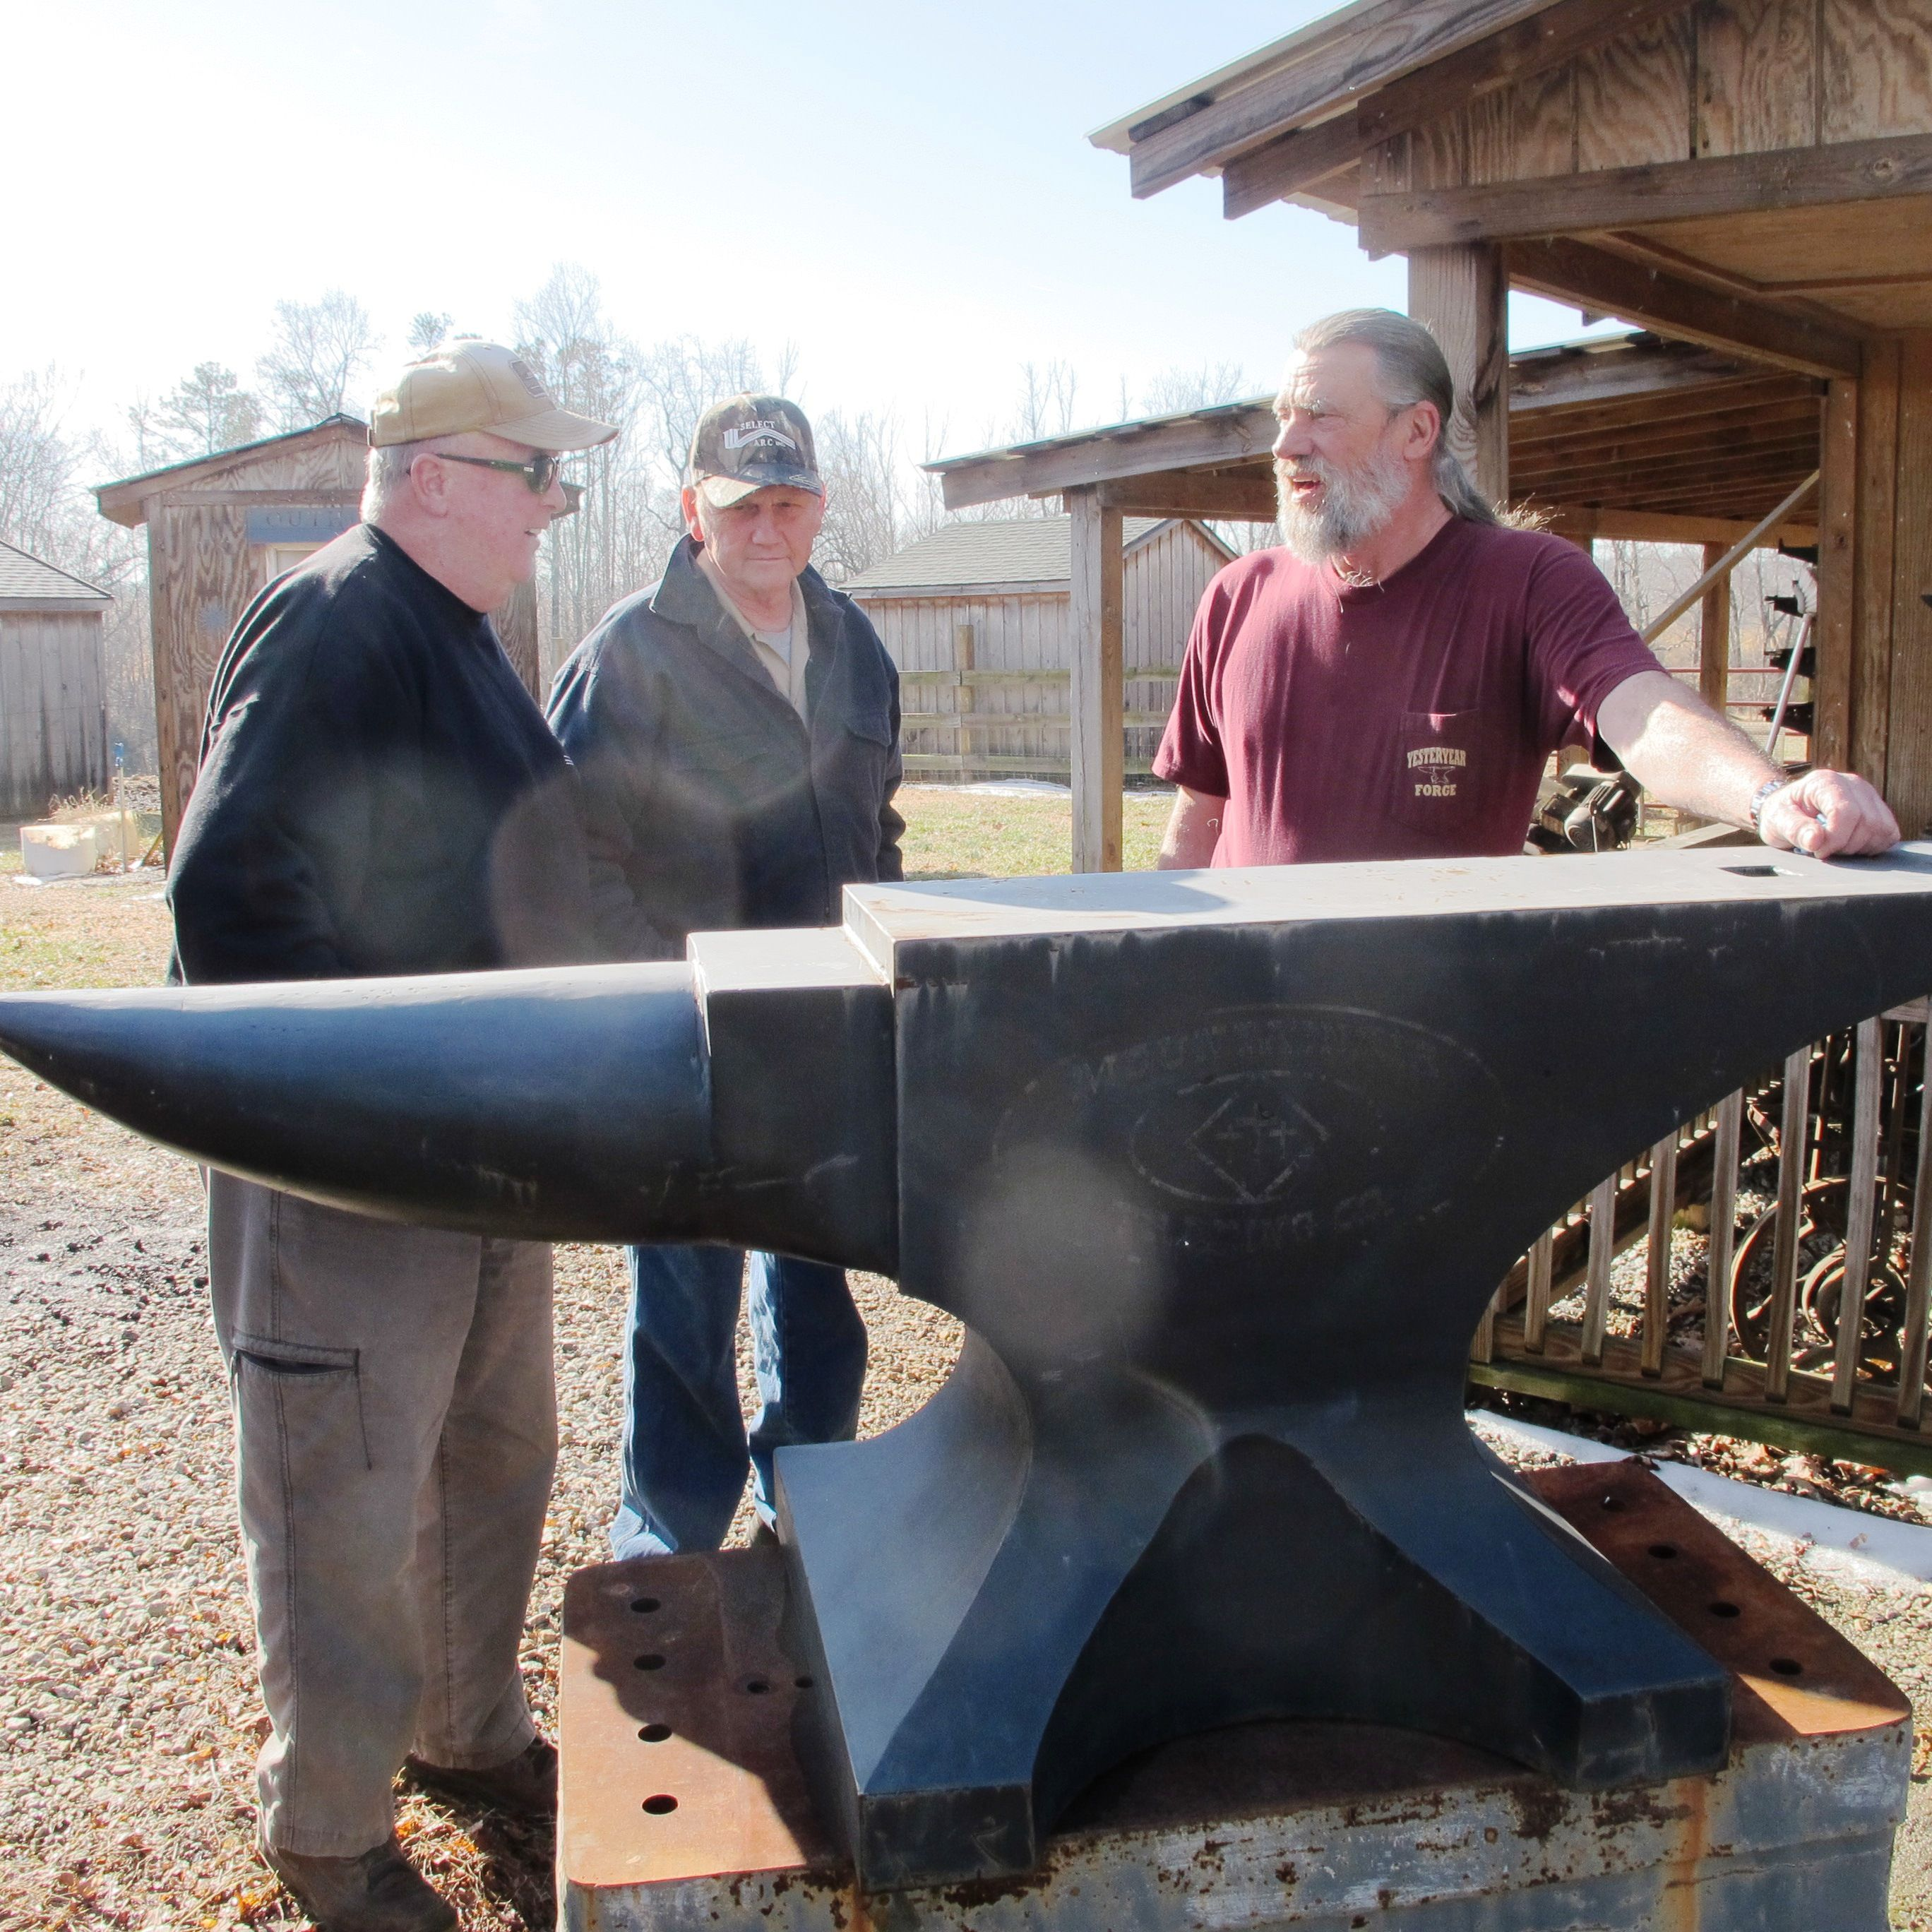 Dan Boone George Smart And Mike Tanner With The Sheet Metal Anvil Sign At Yesteryear Forge Blacksmithing Metal Working Tools Anvil